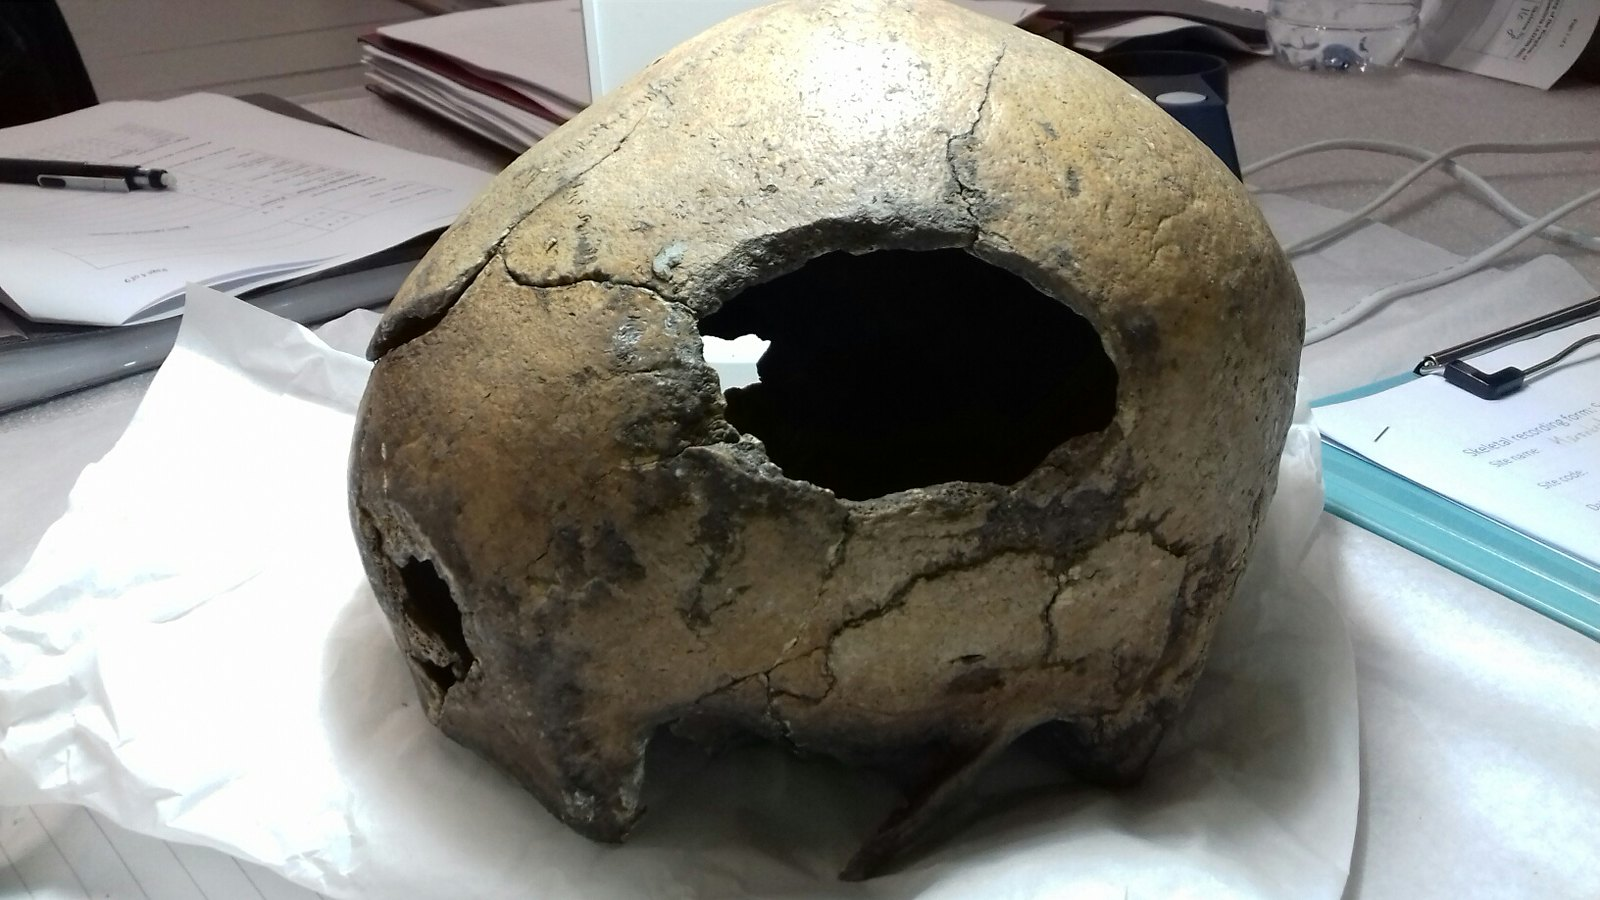 A large hole produced in the side of a skulls as the result of sharp force injury from a weapon such as a sword. This injury is consistent with the cause of death.